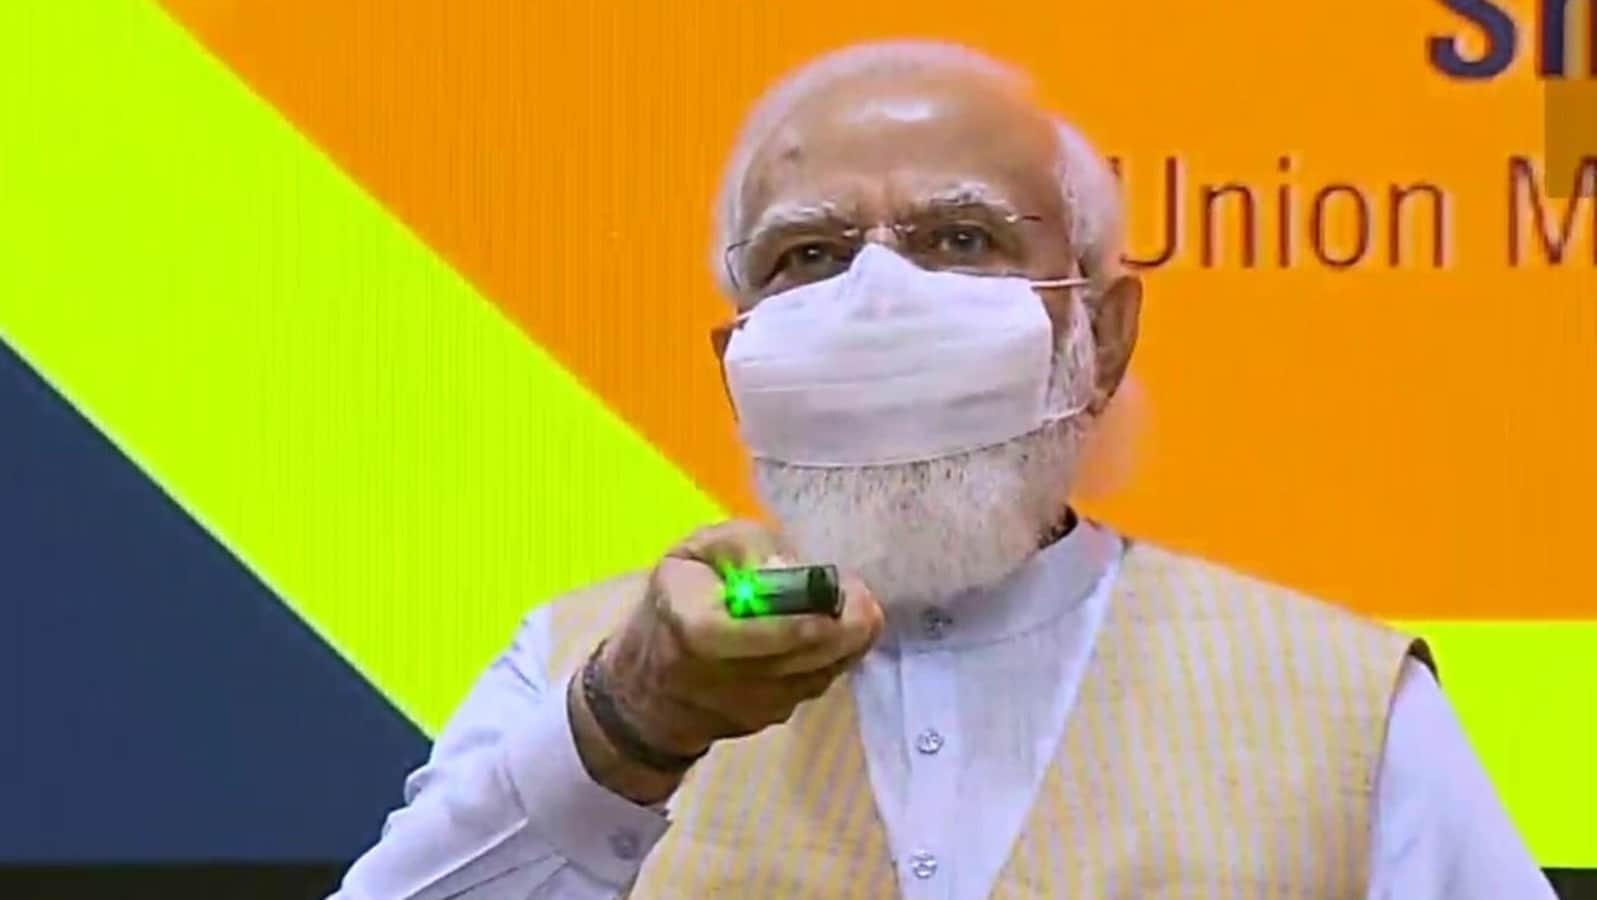 Swachh Bharat, AMRUT 2.0: PM Modi launches plans for garbage free, water secure cities